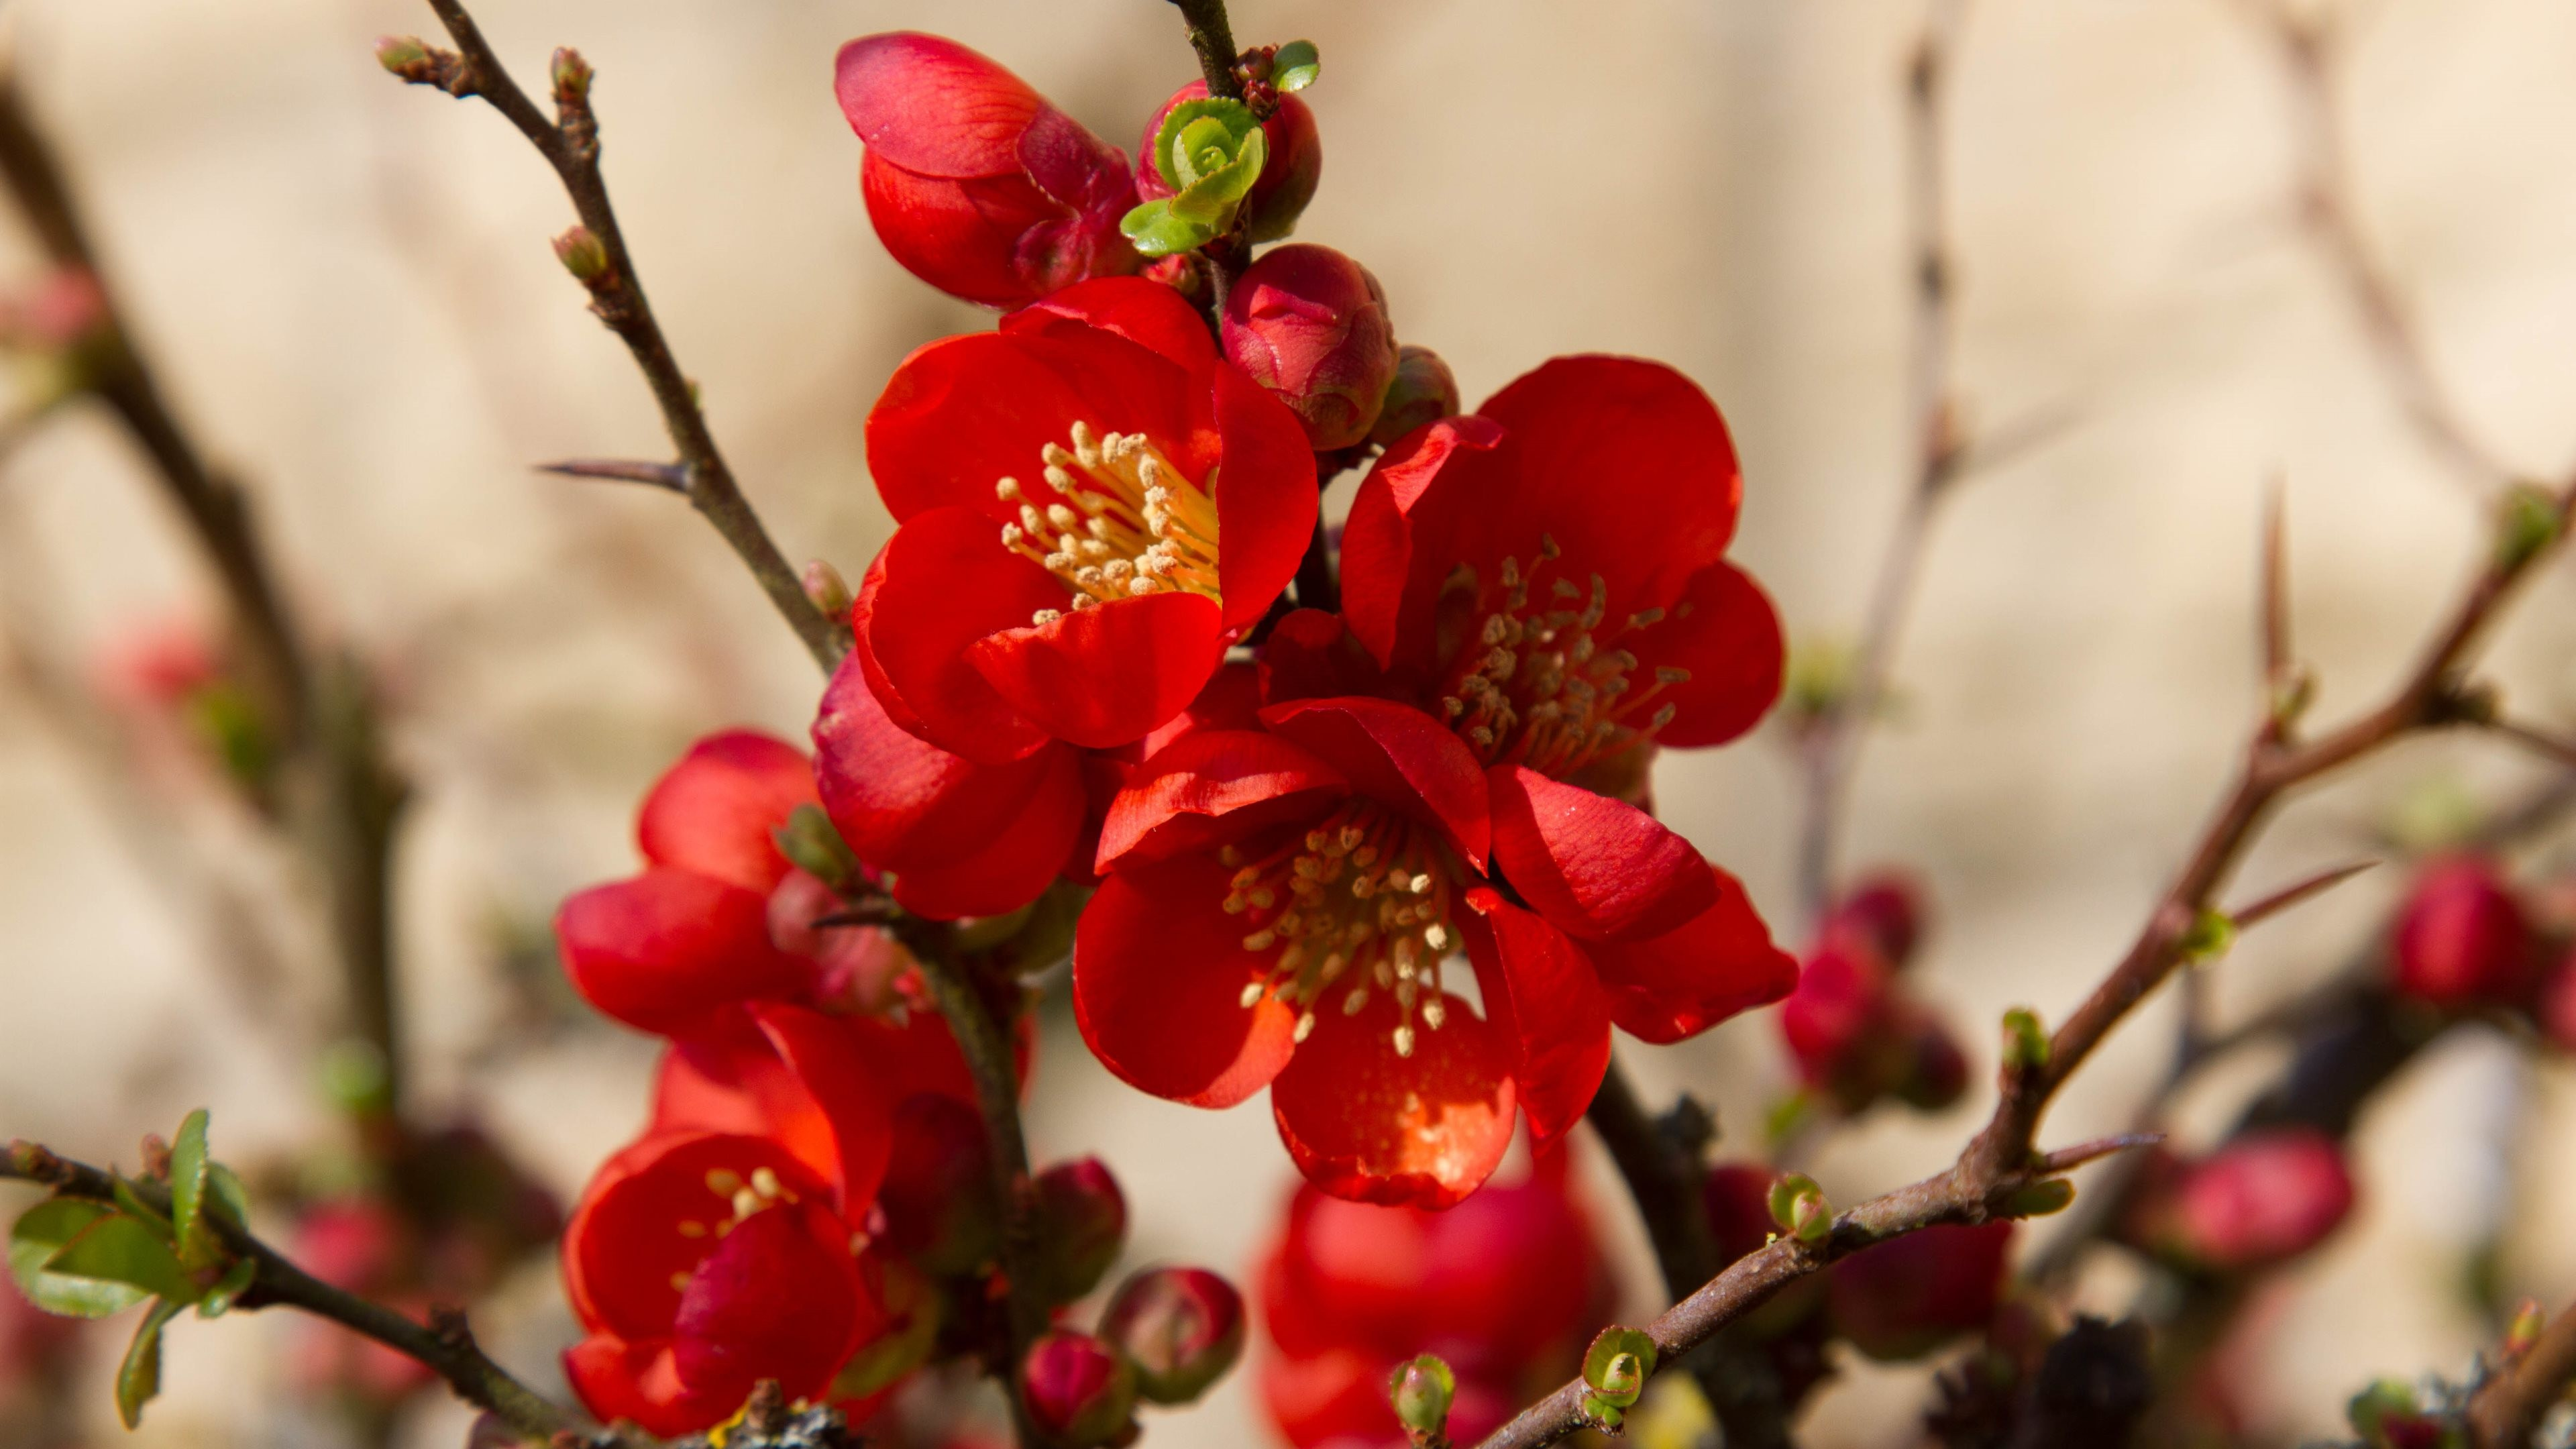 3840x2160 4K HD Wallpaper: Flowers of the Spring: Japanese Quince